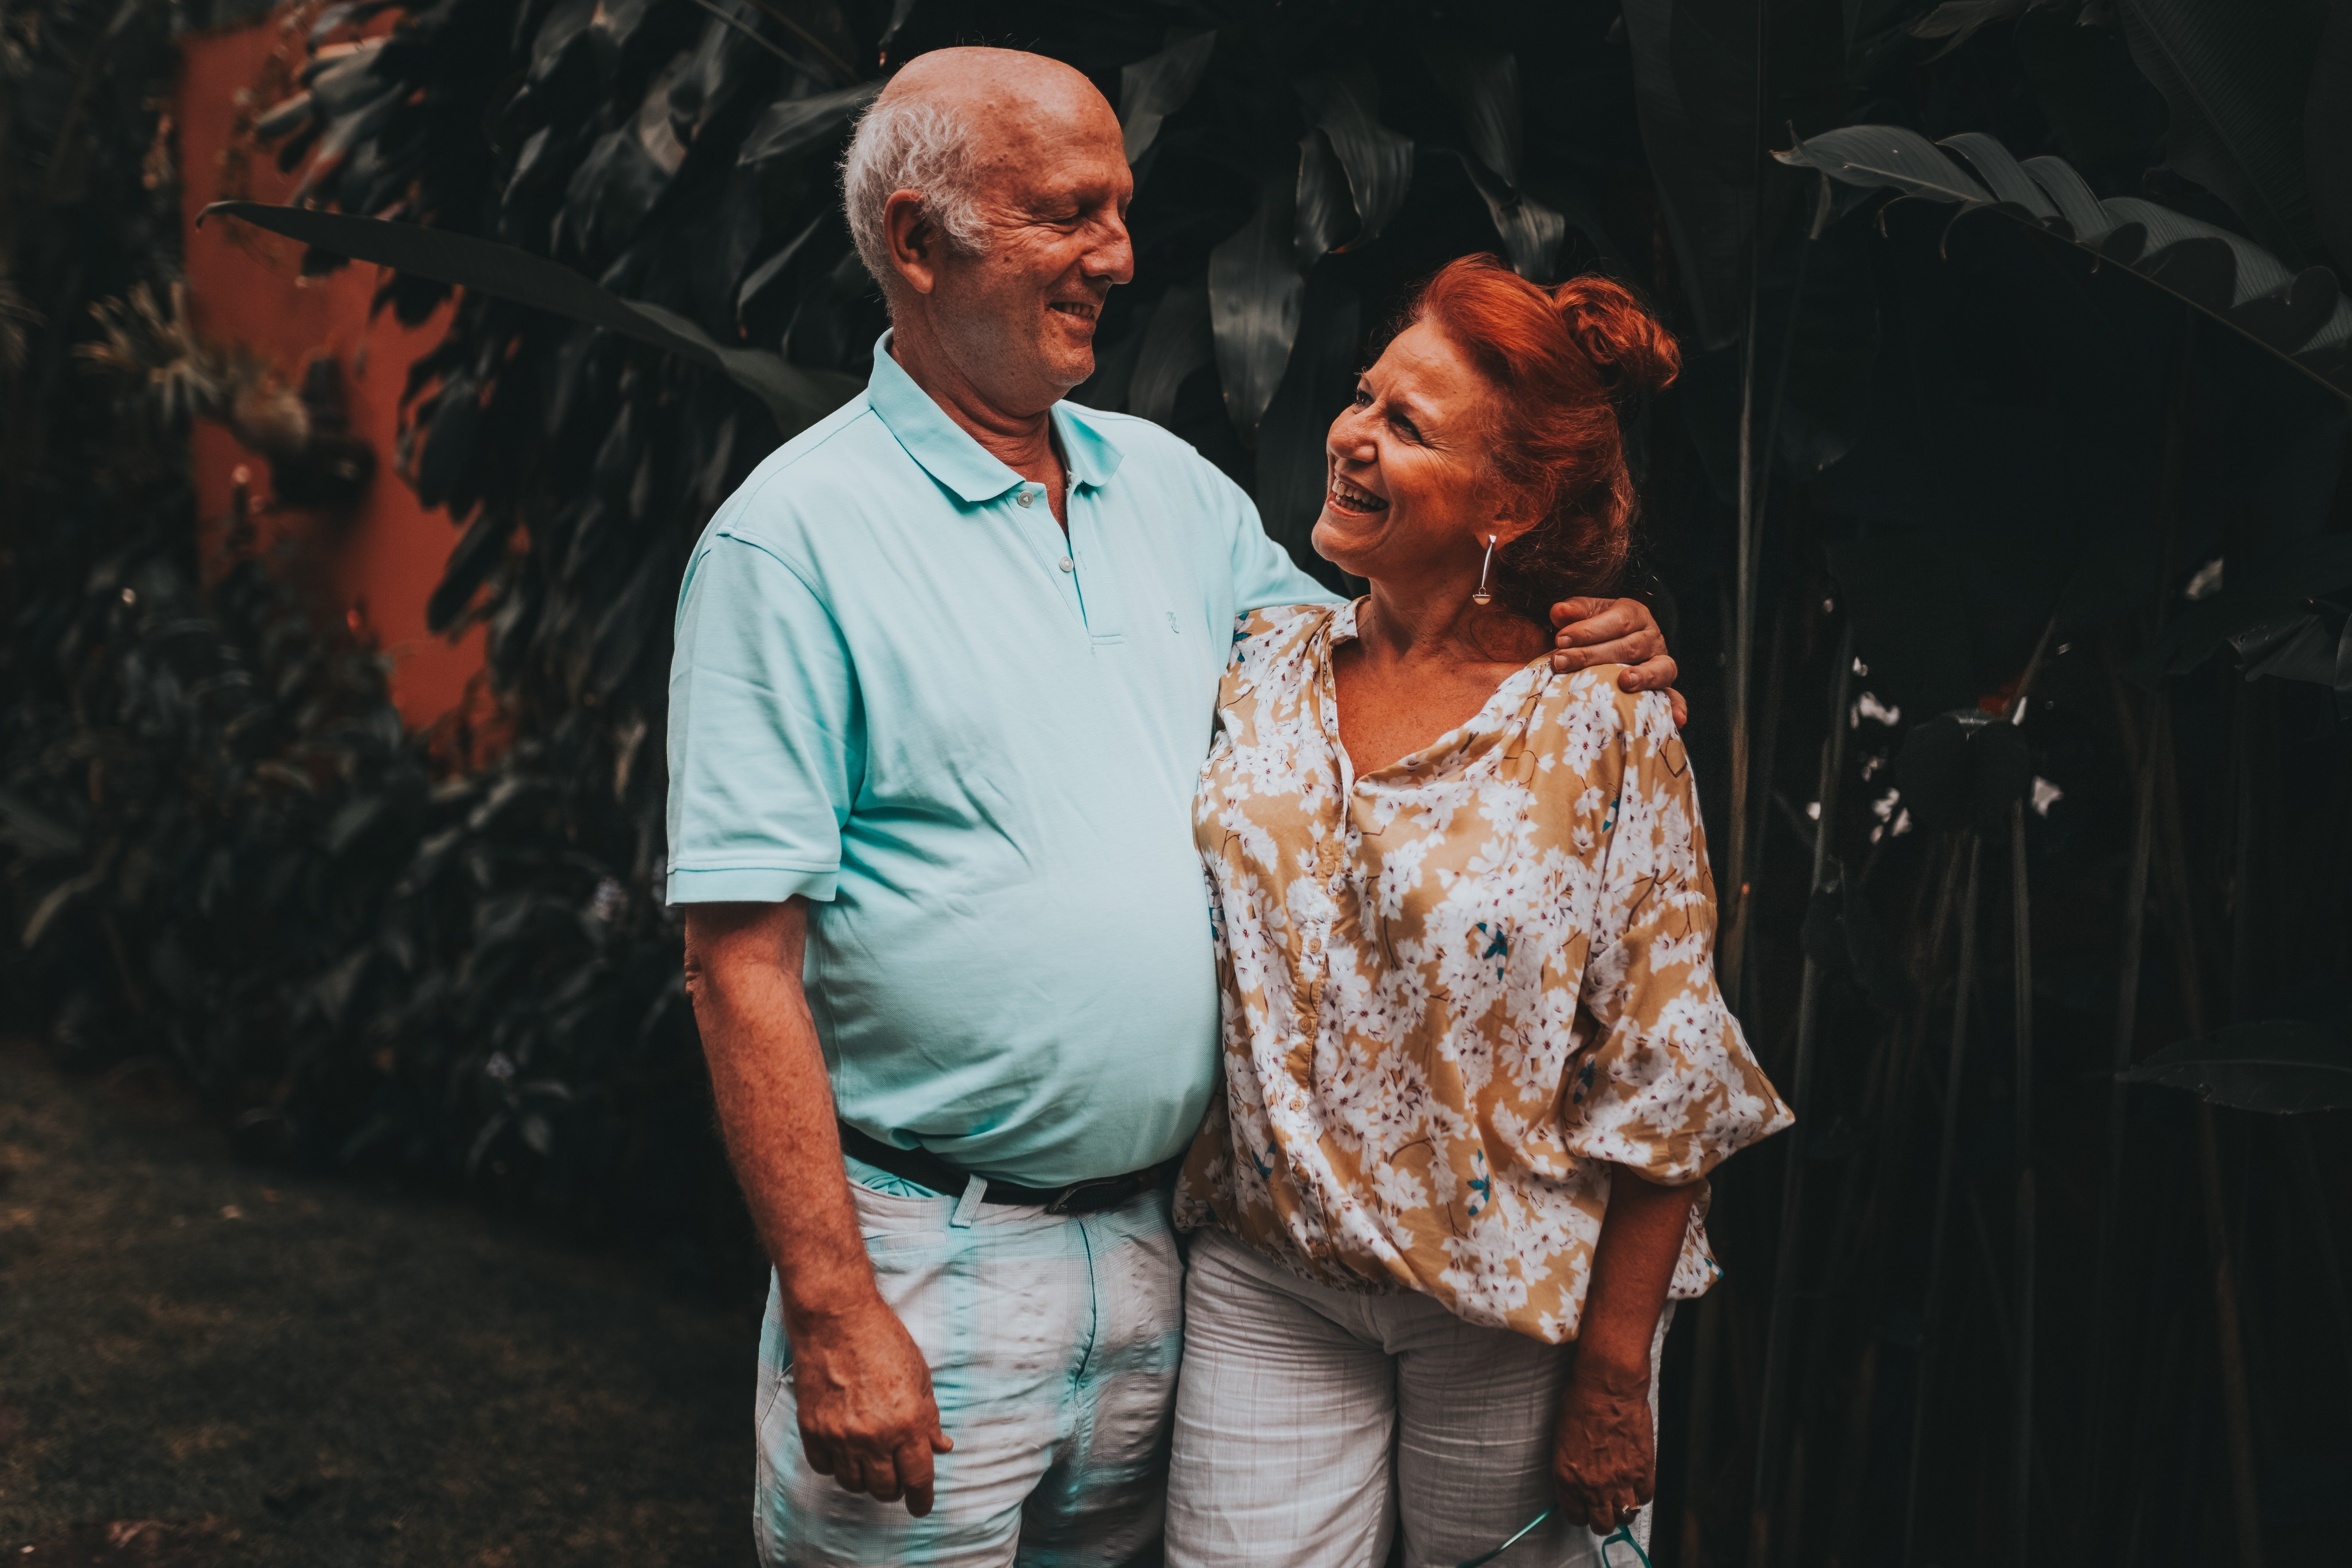 A pair of old man and woman looking each other affectionately. | Source: Pexels